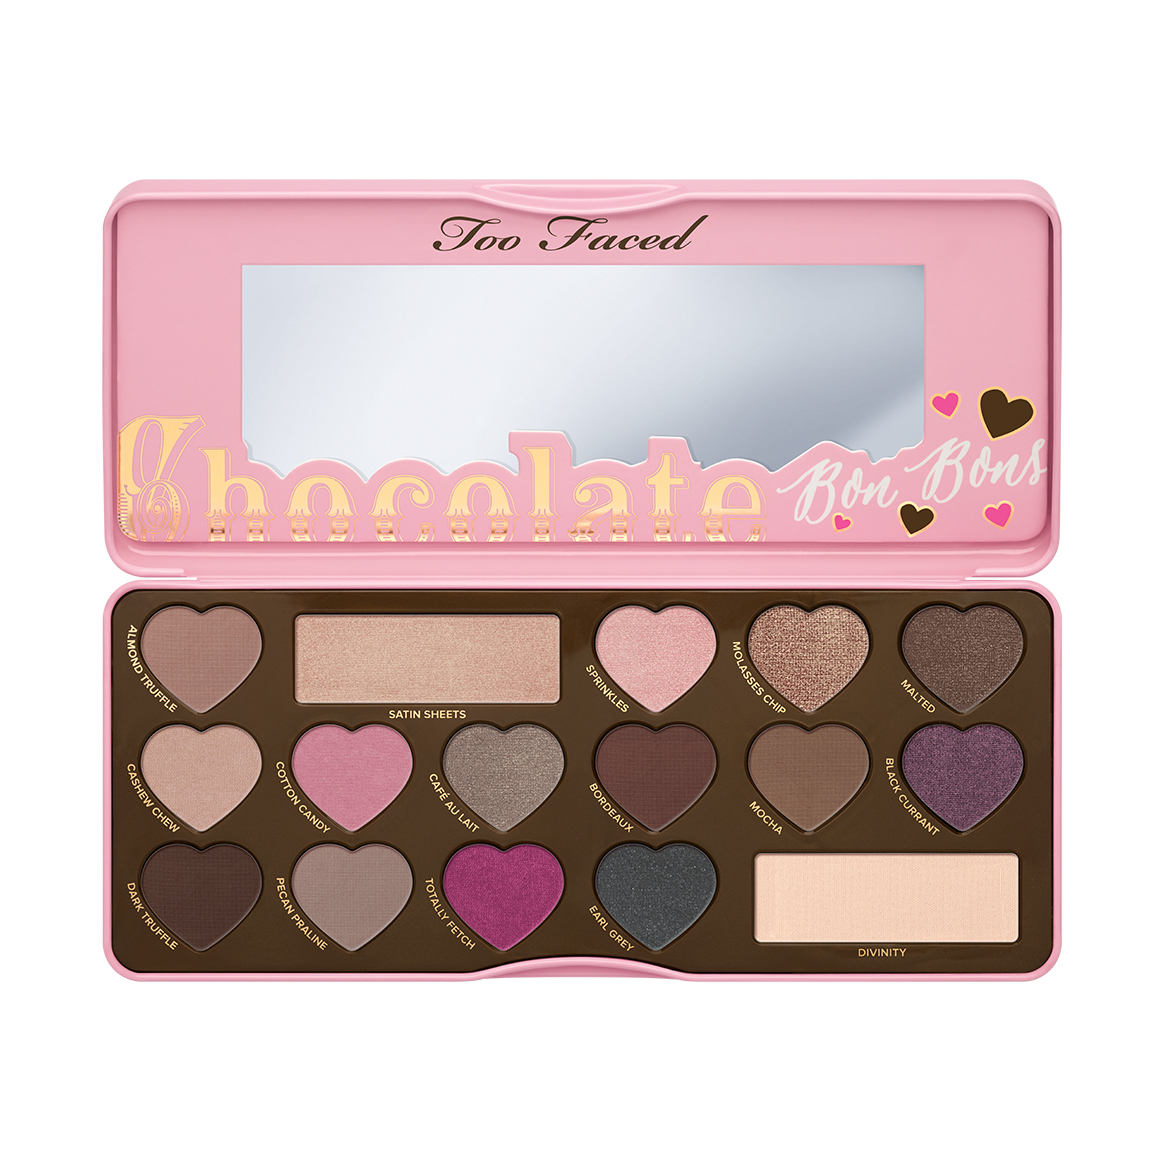 Too Faced Chocolate Bon Bons Palette - best eyeshadow palettes for green eyes